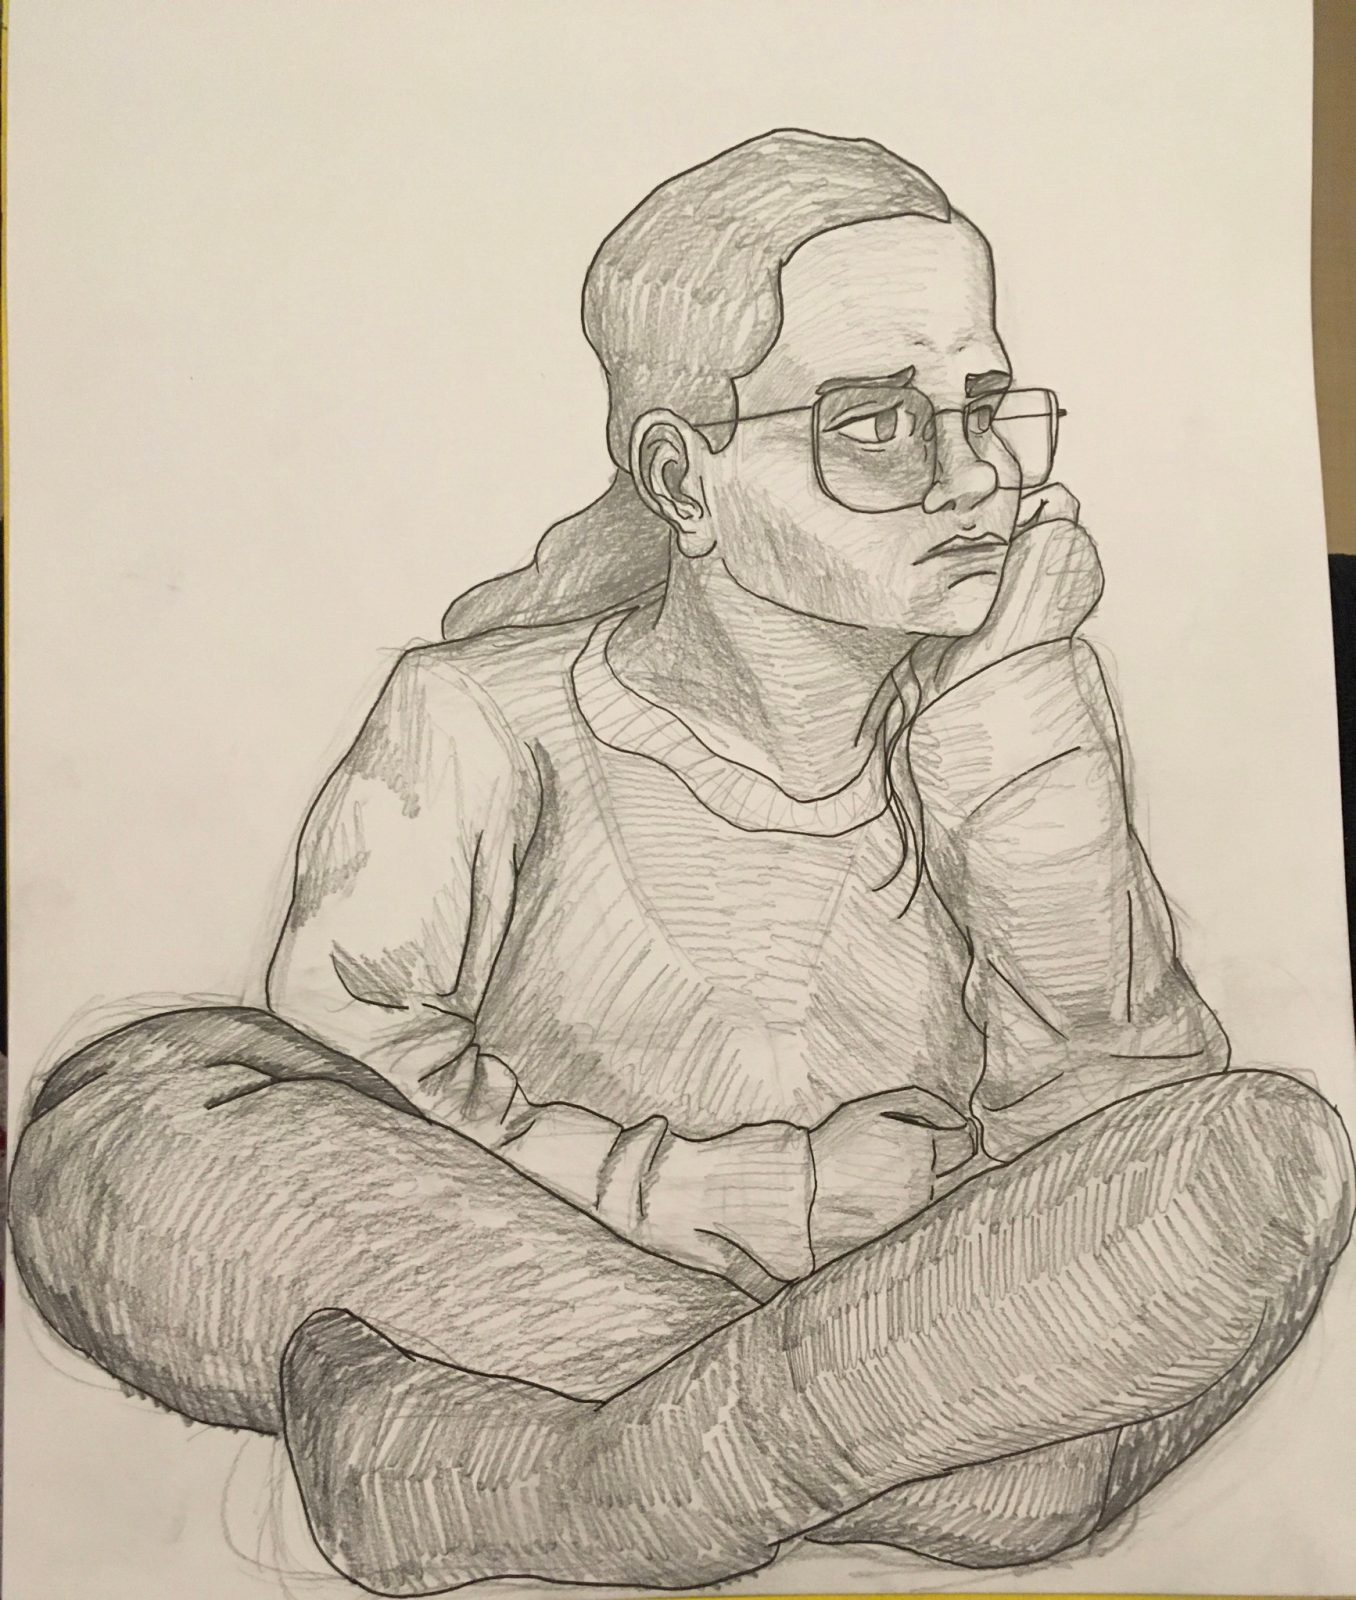 A graphite drawing of a young woman seated on the floor with her legs crossed and her head in her hand